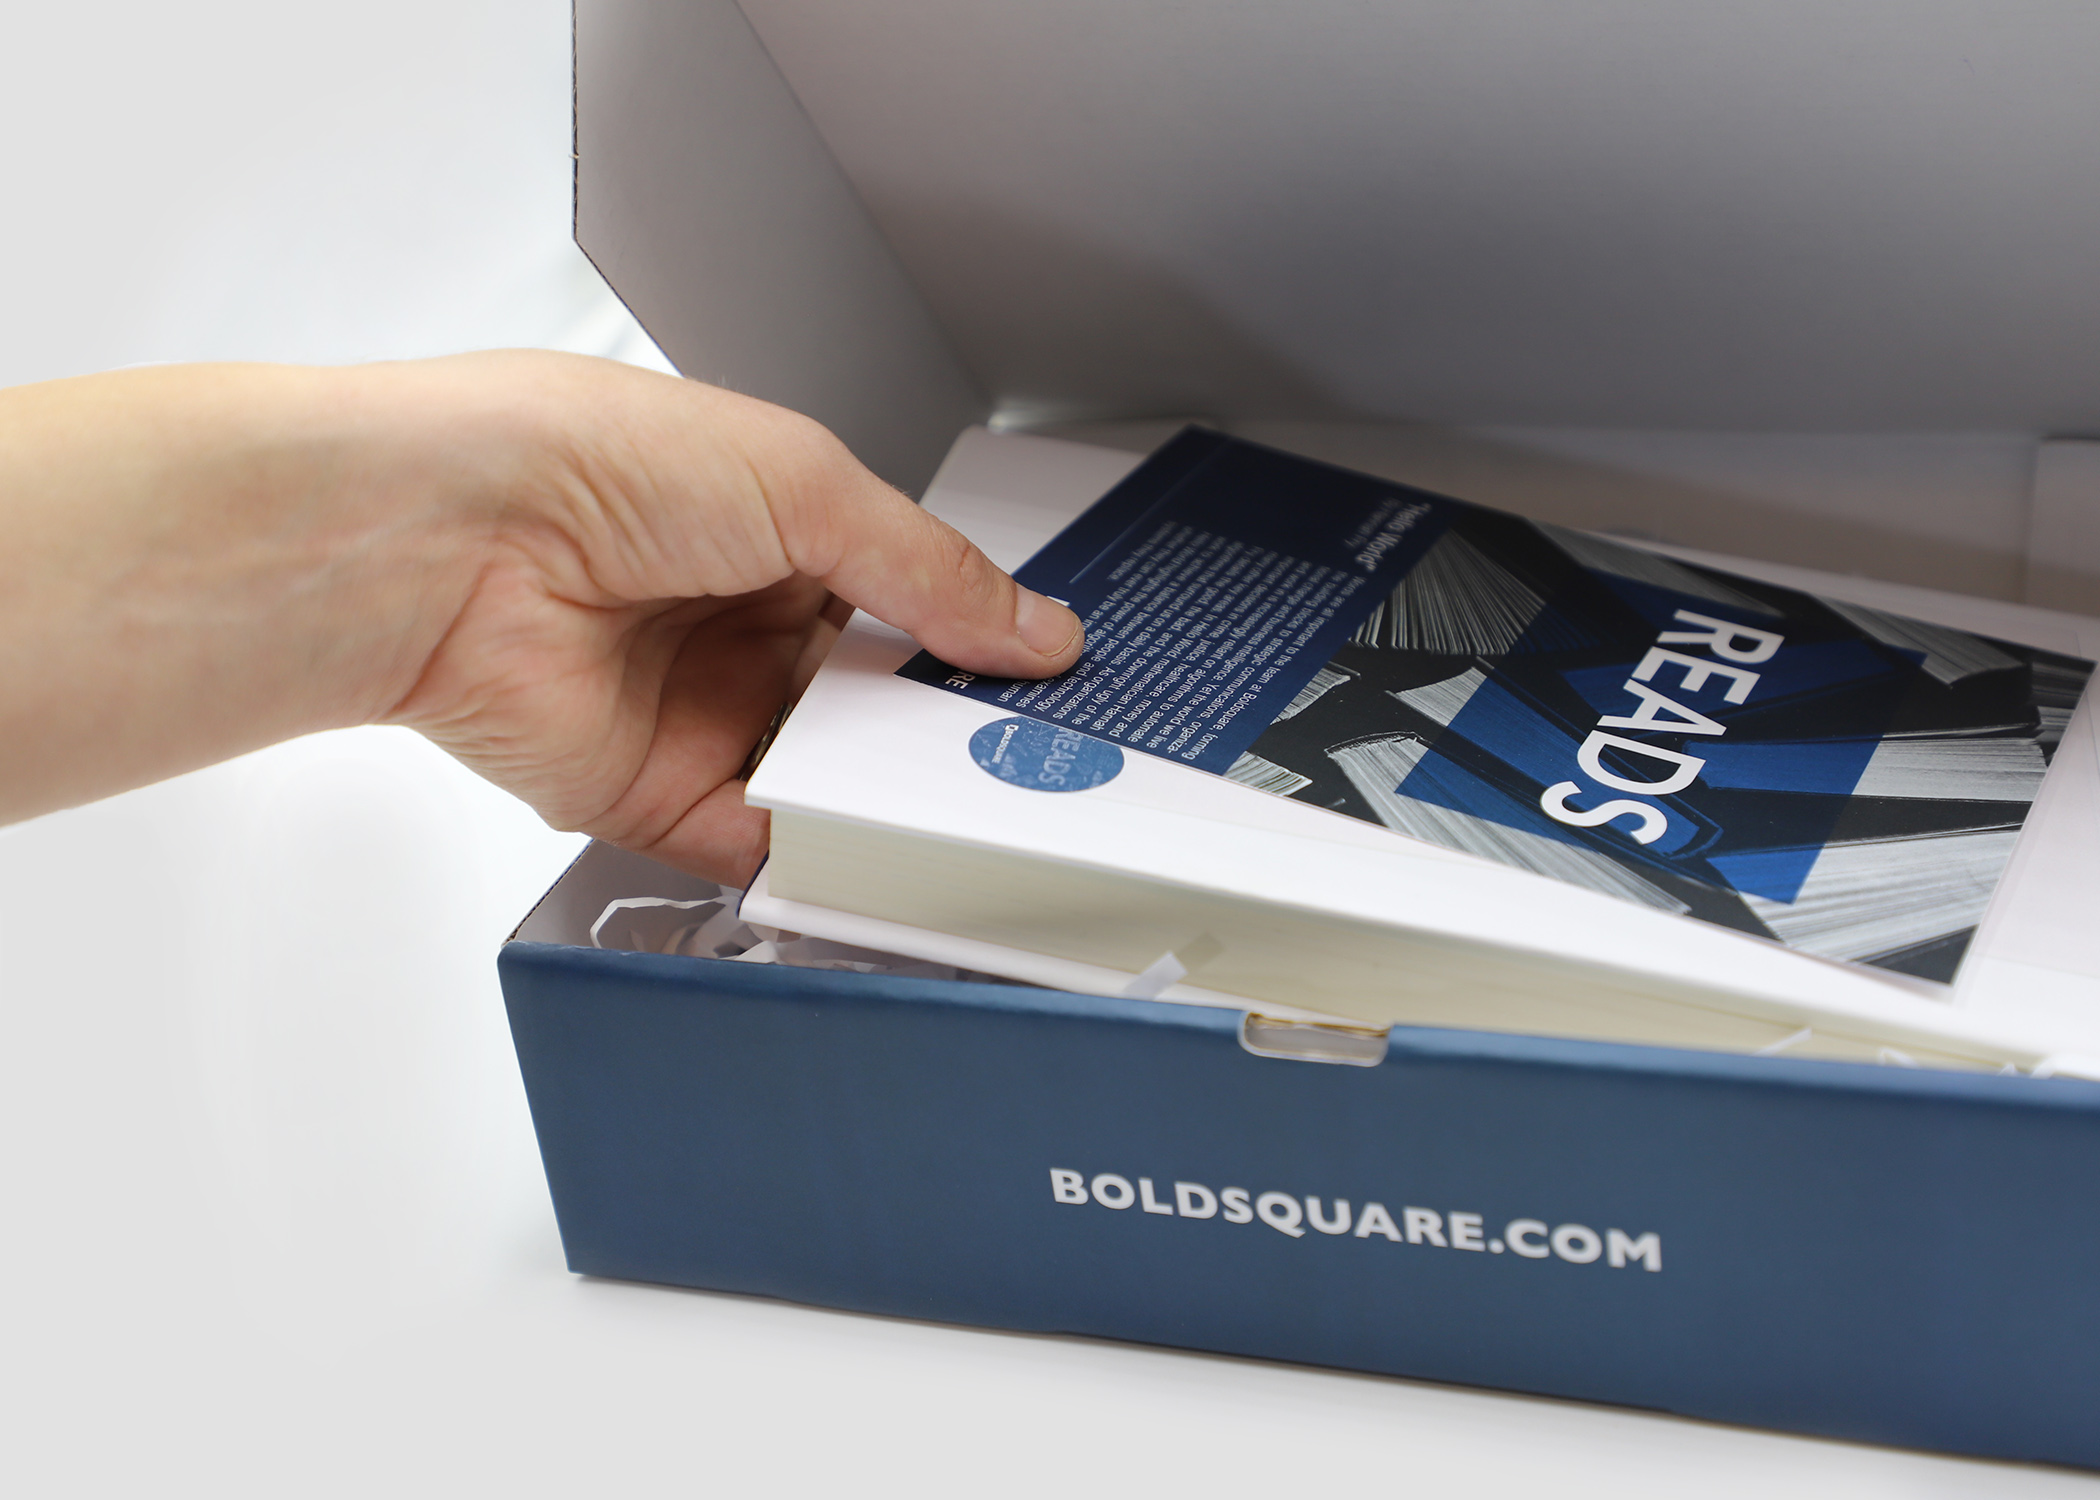 Boldsquare_package_hand